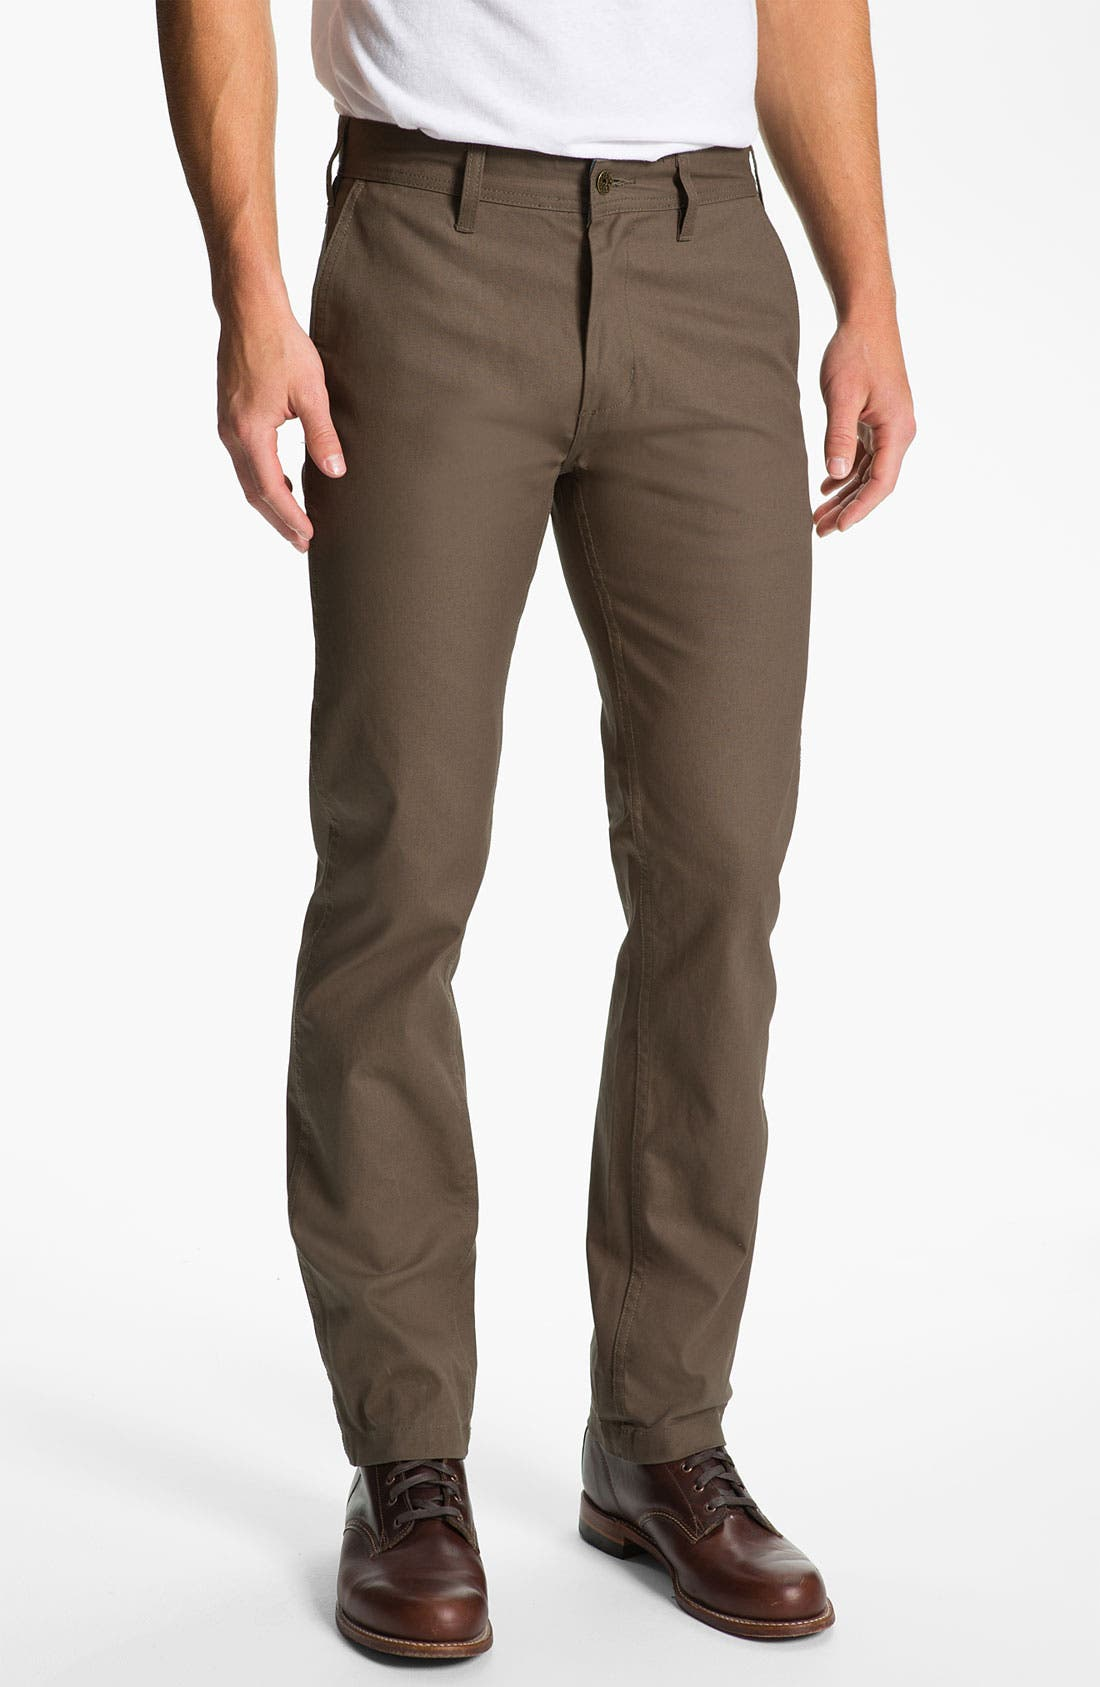 Alternate Image 1 Selected - Obey 'Trademark' Wax Coated Chinos